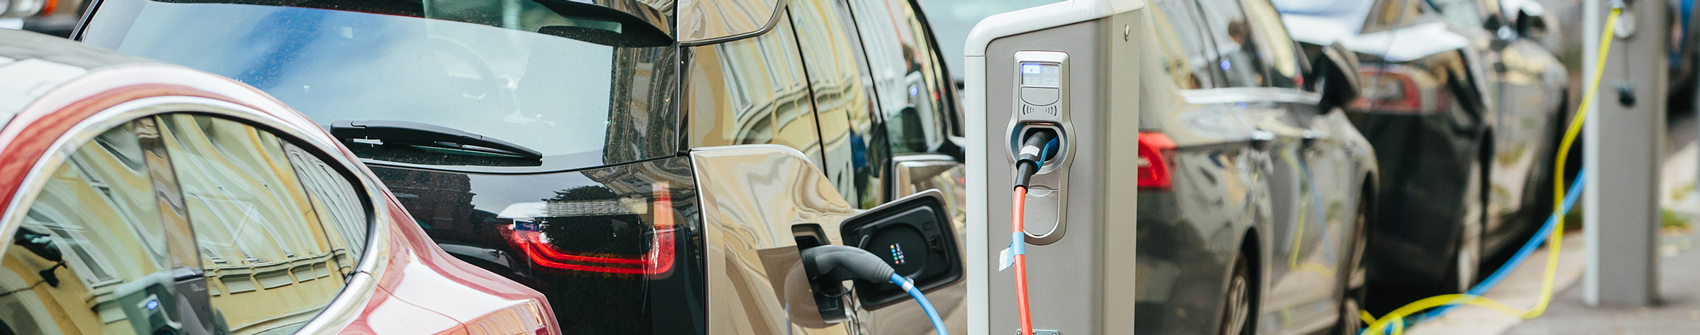 Electric Vehicles Part 3: EVs' Impact On Oil Markets Muted Over Next 20 Years